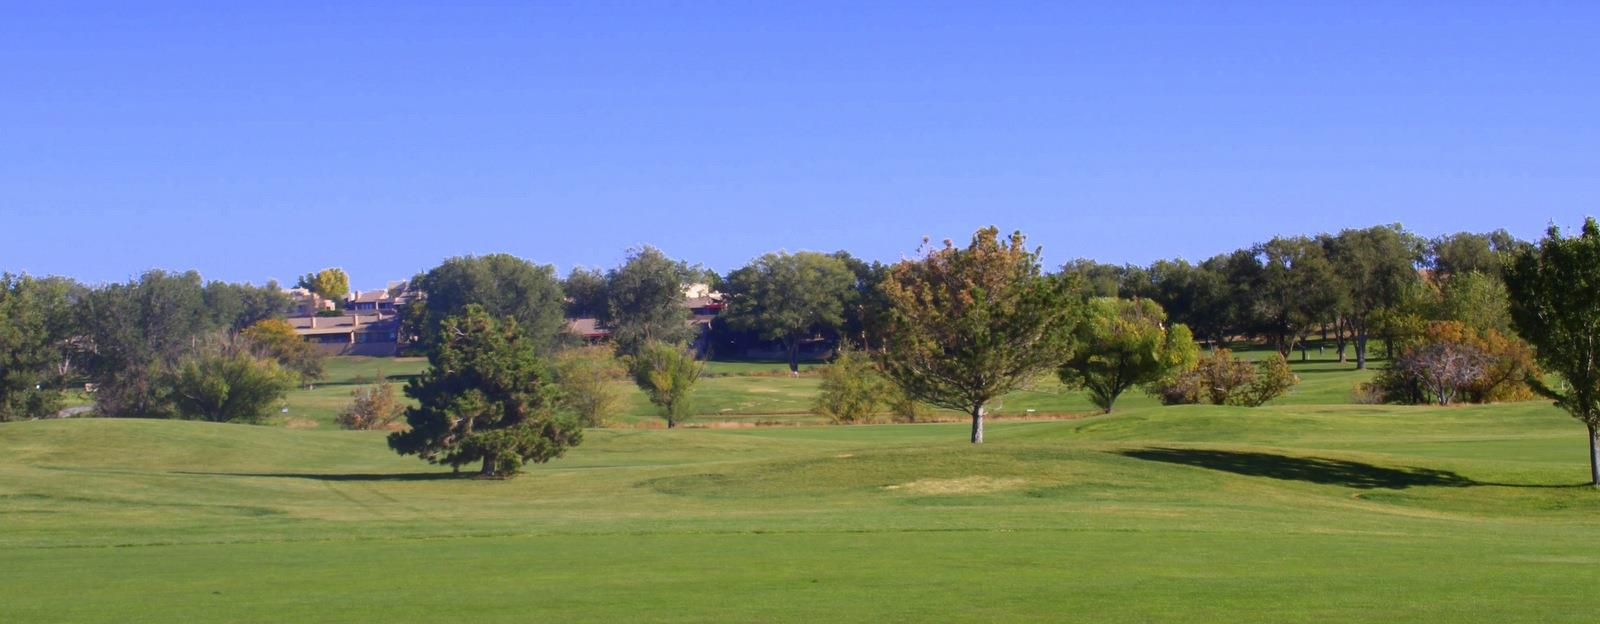 Golf Links Homes for Sale Prescott